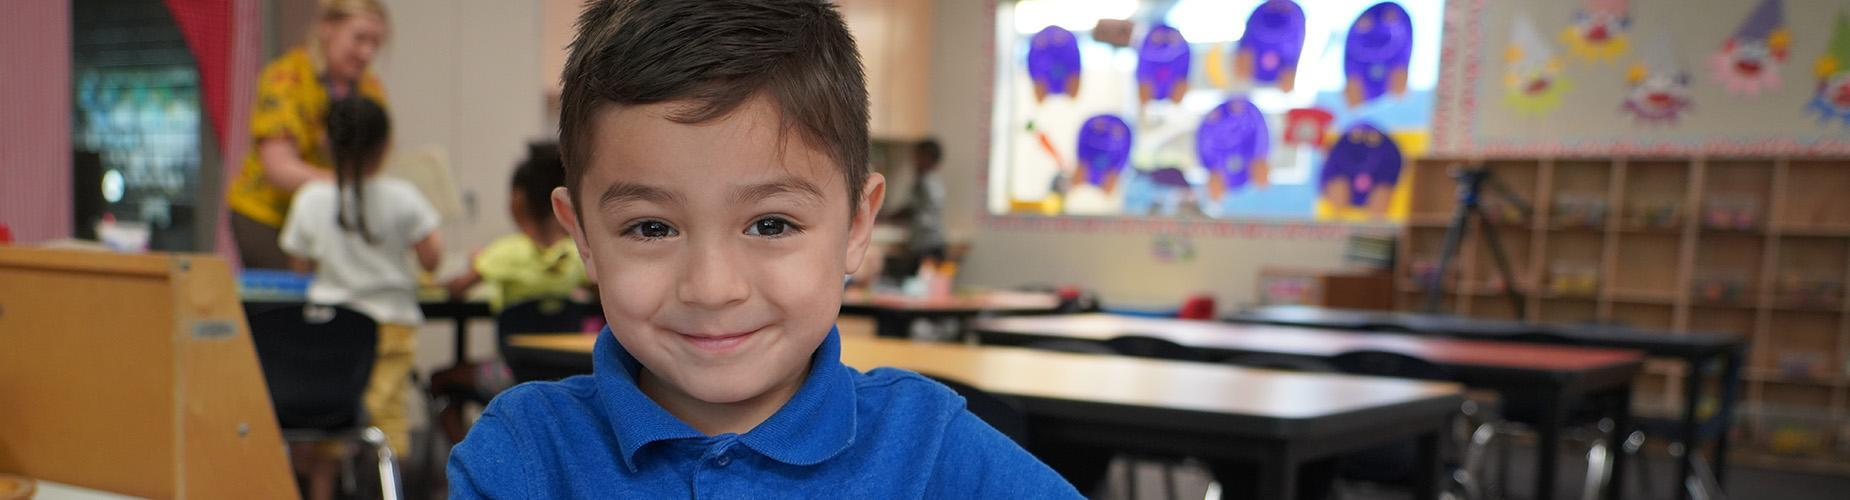 Child smiling in a classroom